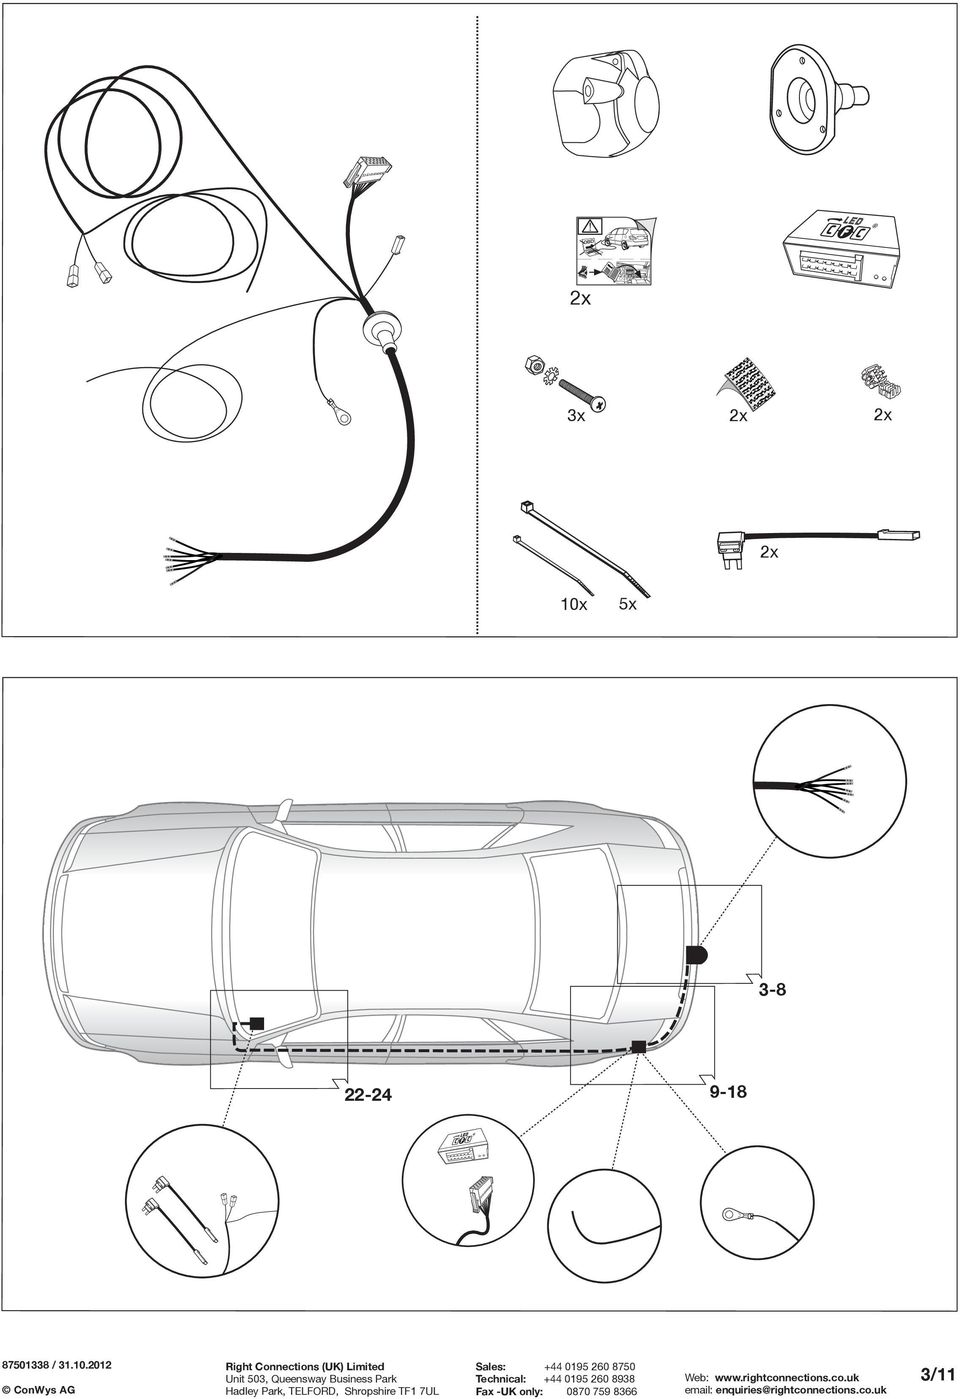 Fitting Instructions Part No Rc Vauxhall Meriva B 06 10 Important Wiring Diagram 2012 Stratoliner S 5x 3 8